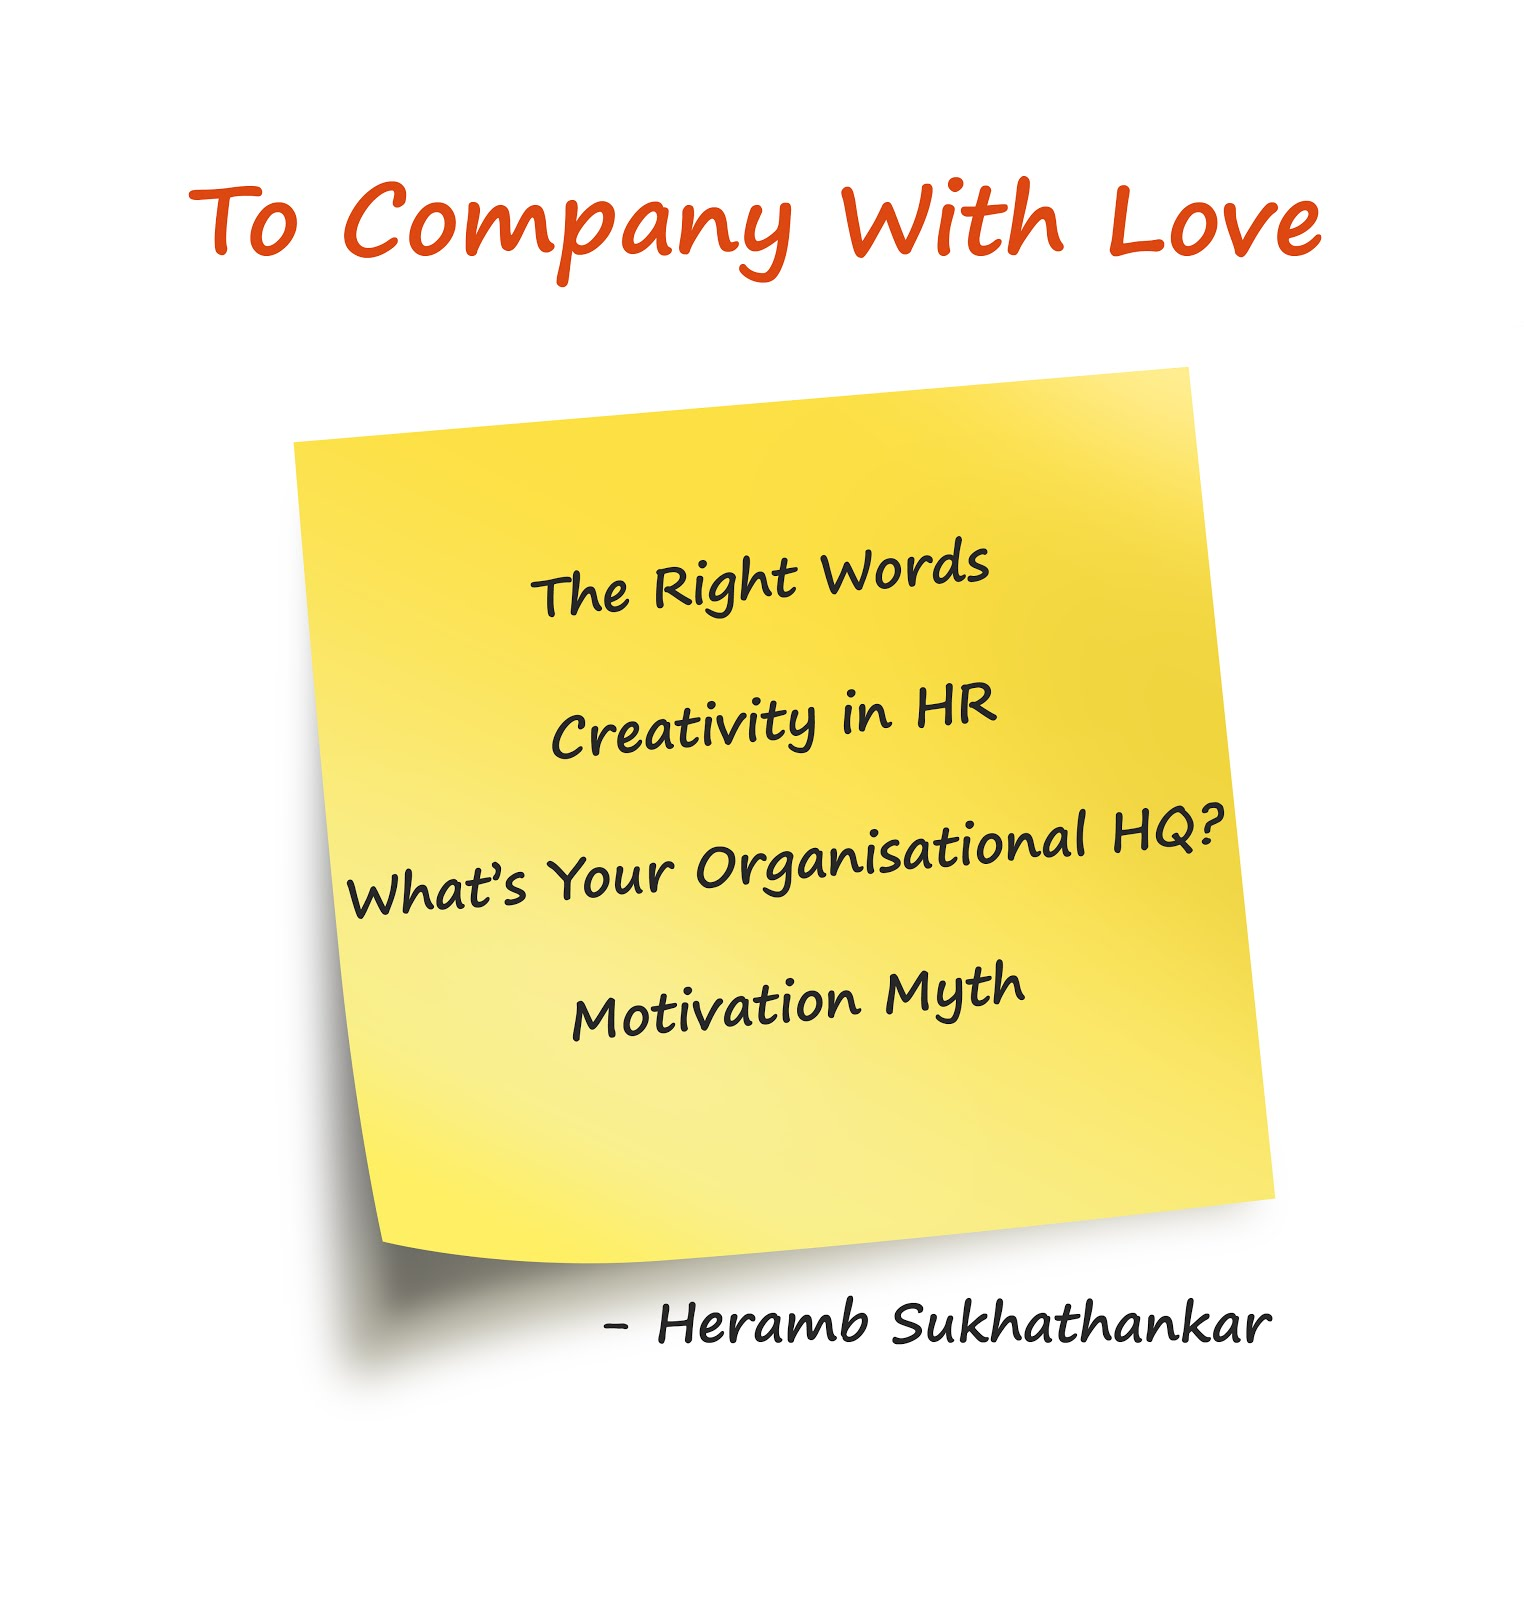 Download: To Company With Love